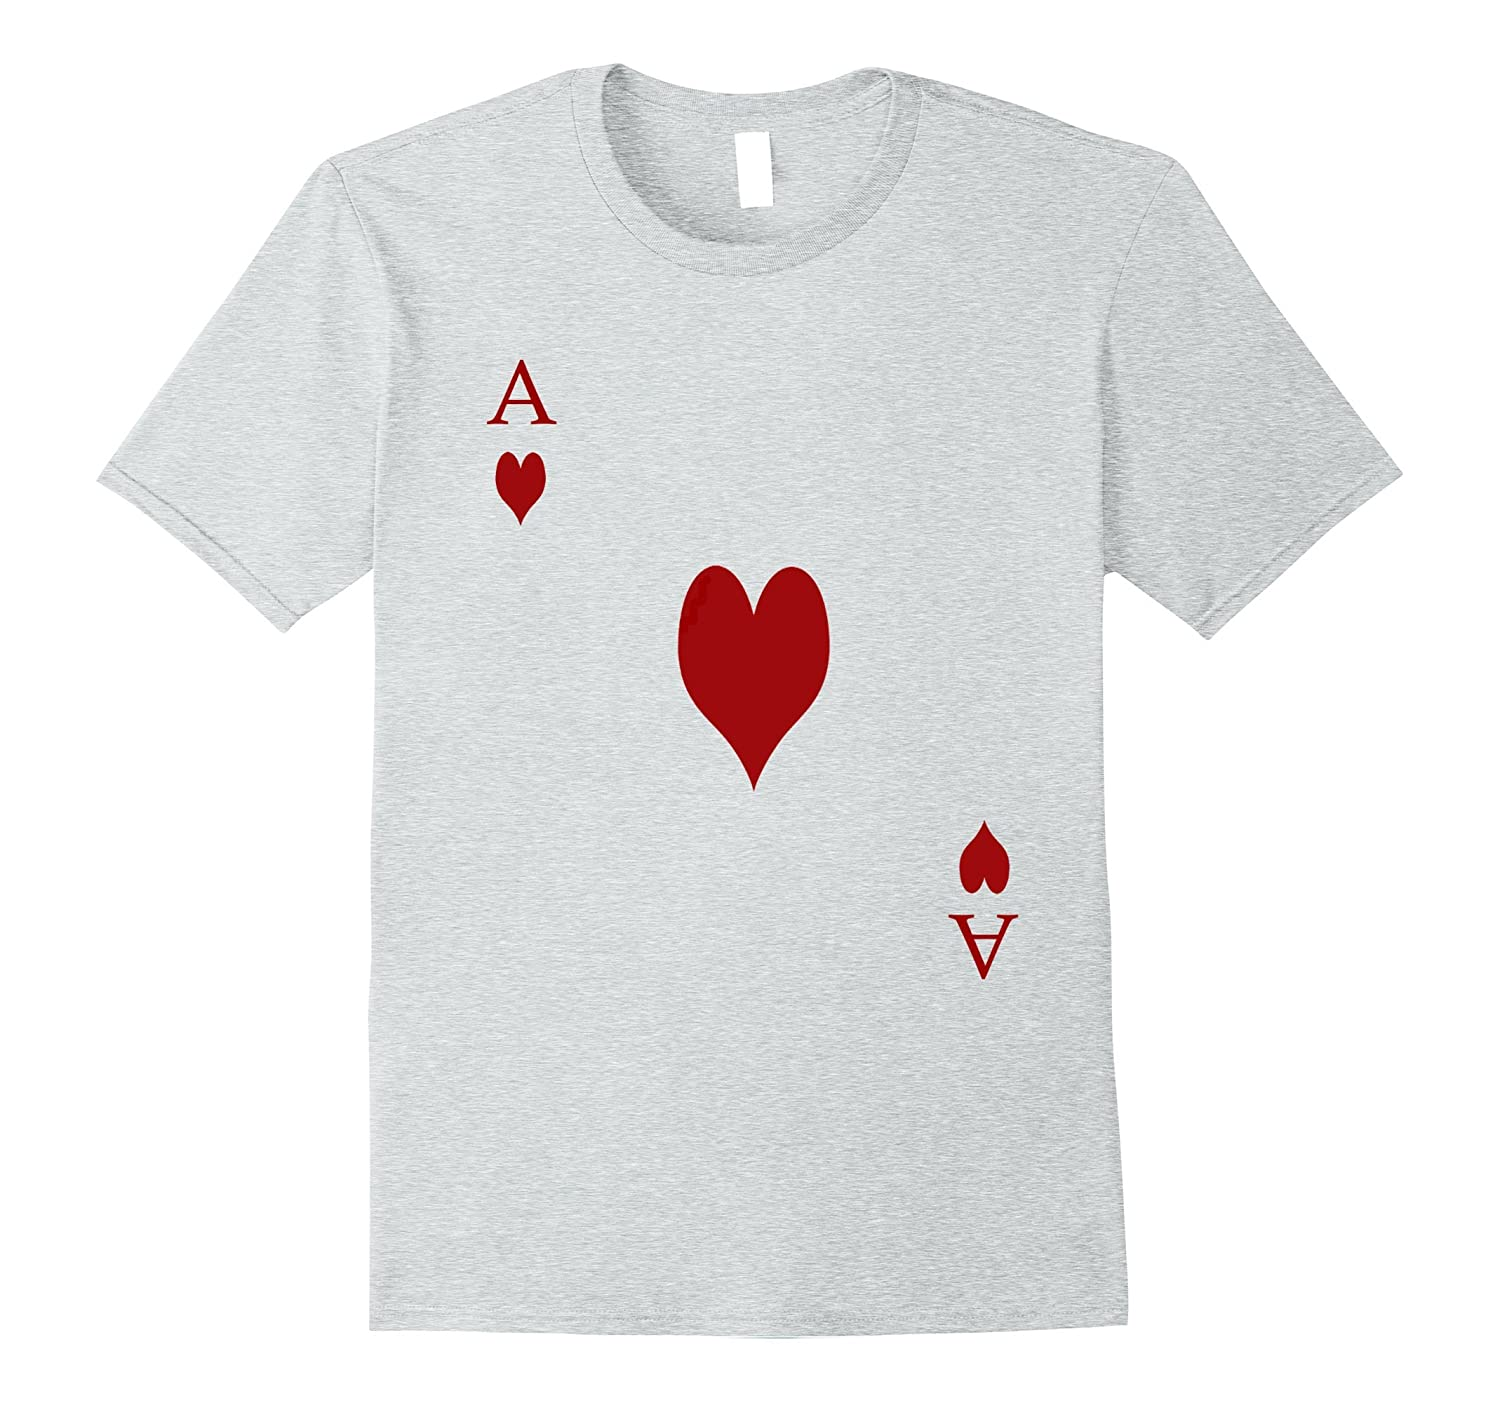 Ace of Hearts Tshirt Costume - Be Part of a Royal Flush!-BN